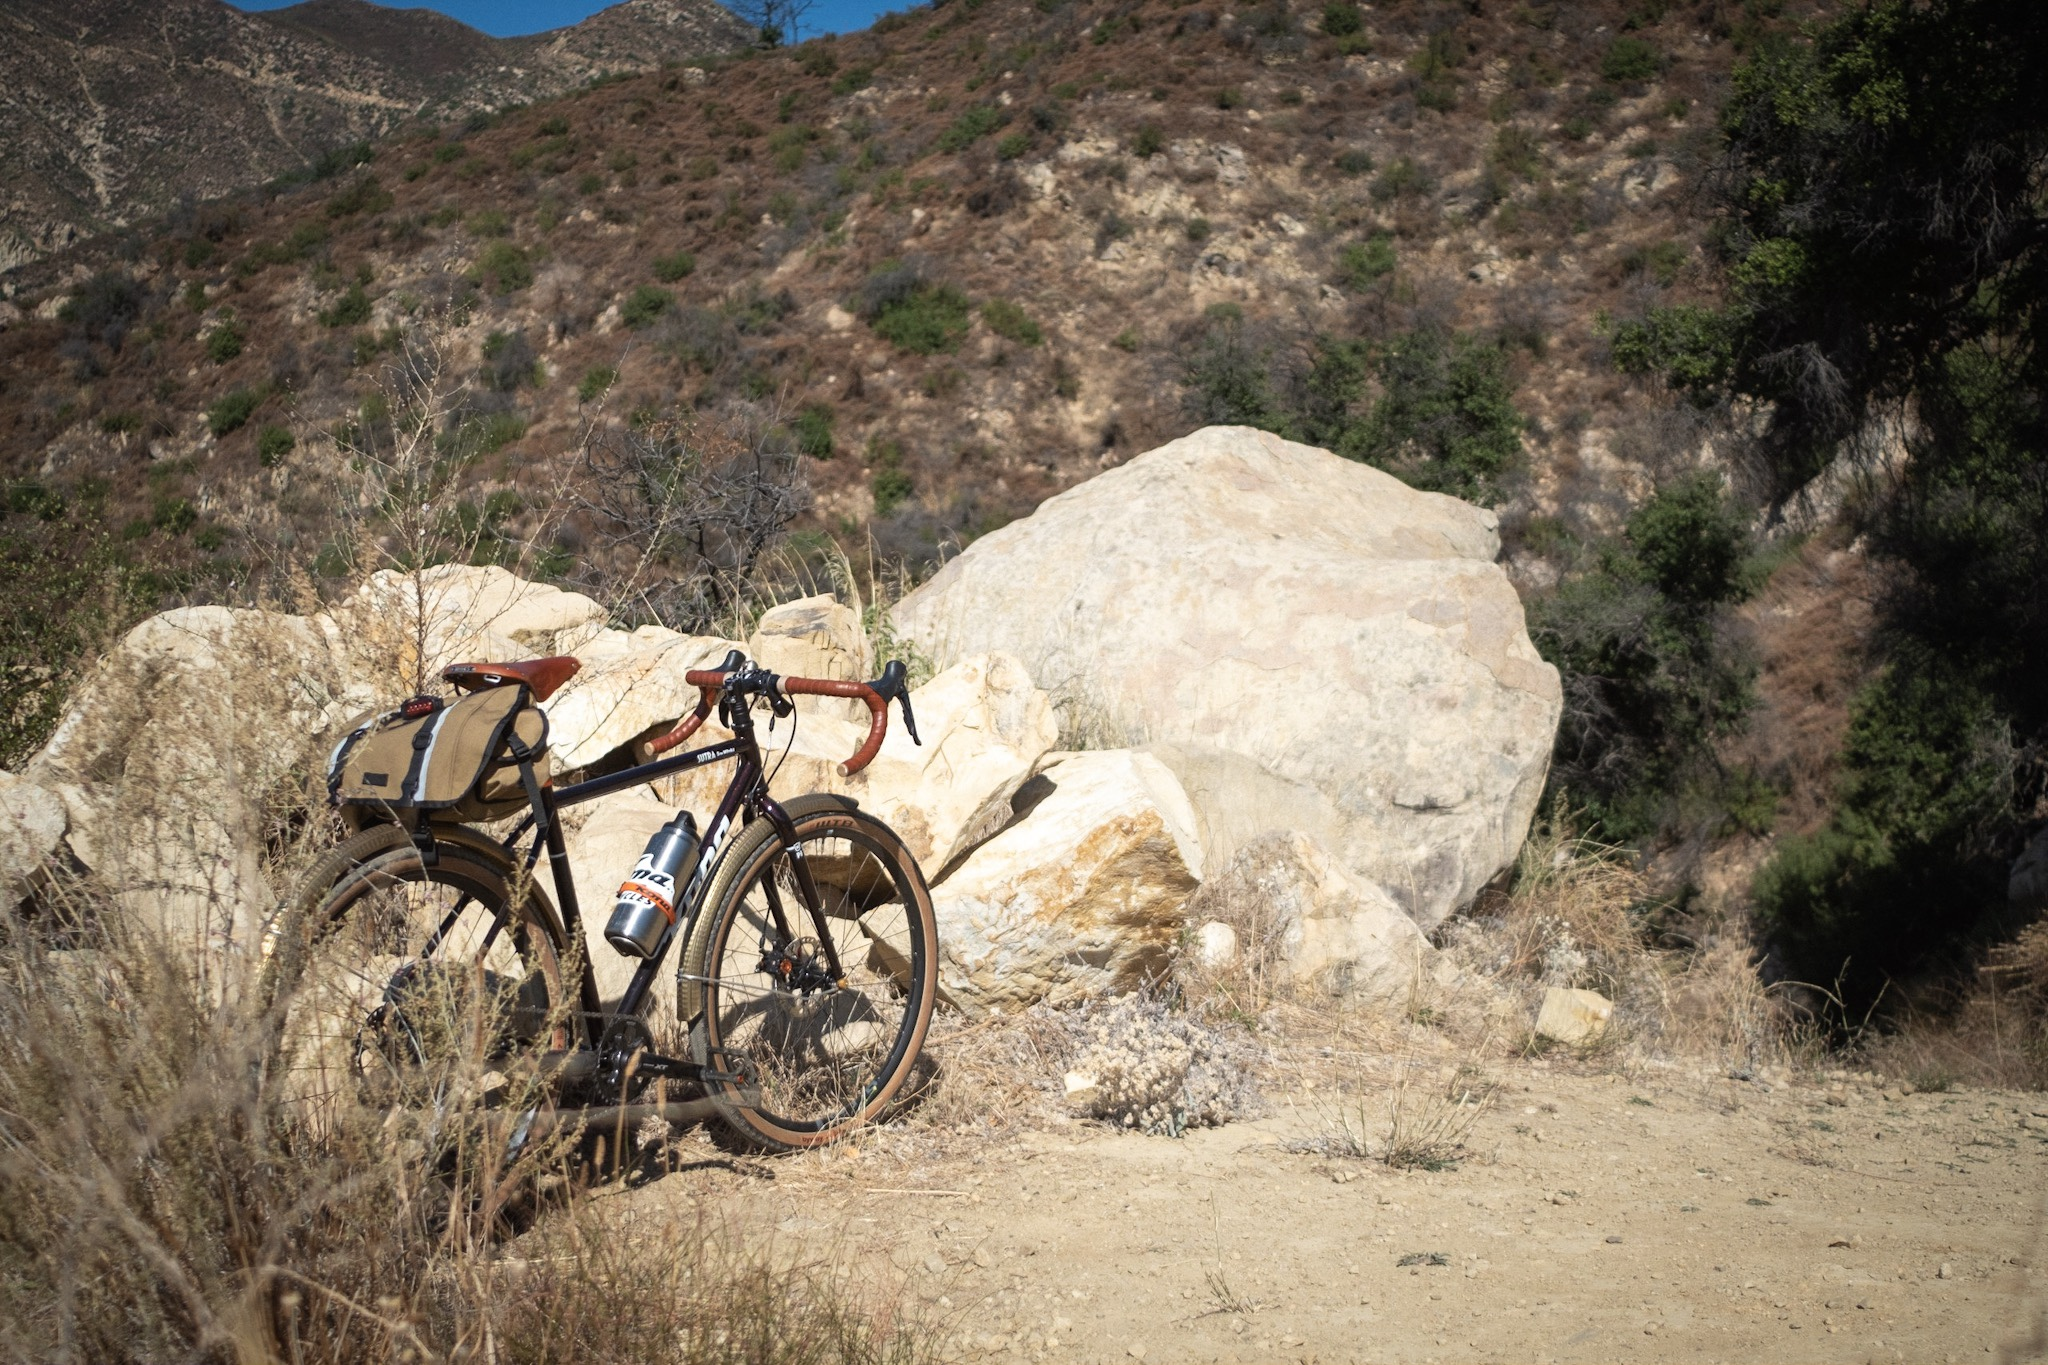 Kona Sutra 650b rocking it on Romero Canyon Trail, Santa Barbara, CA